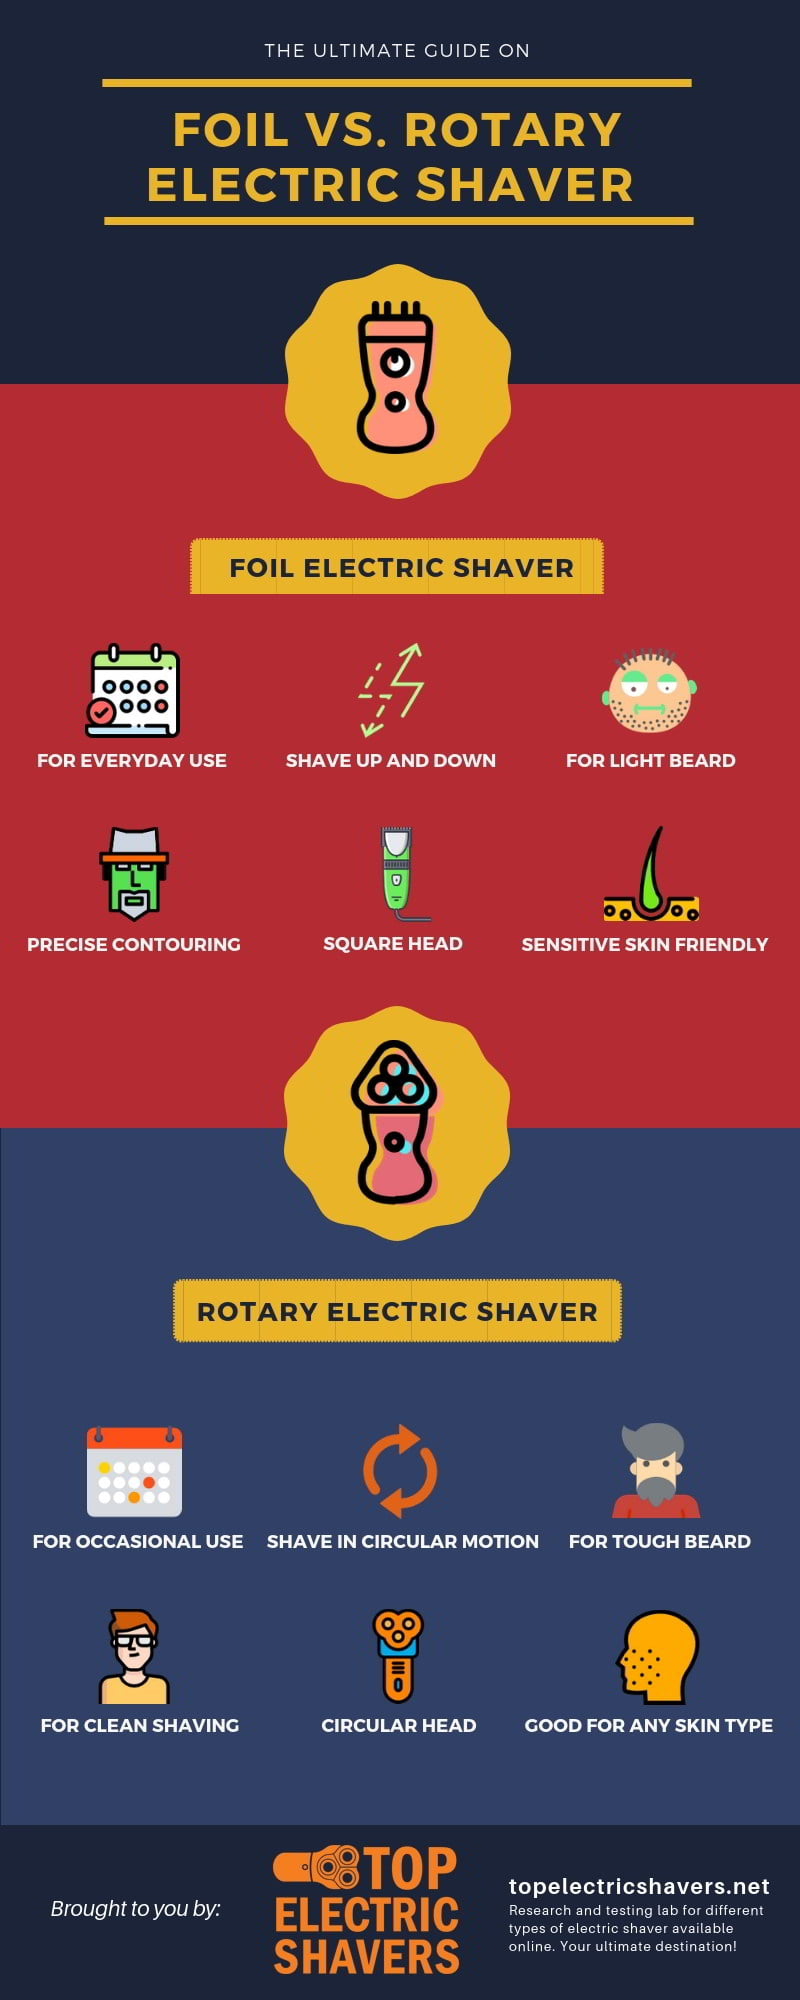 Foil Vs. Rotary Shaver Infographic